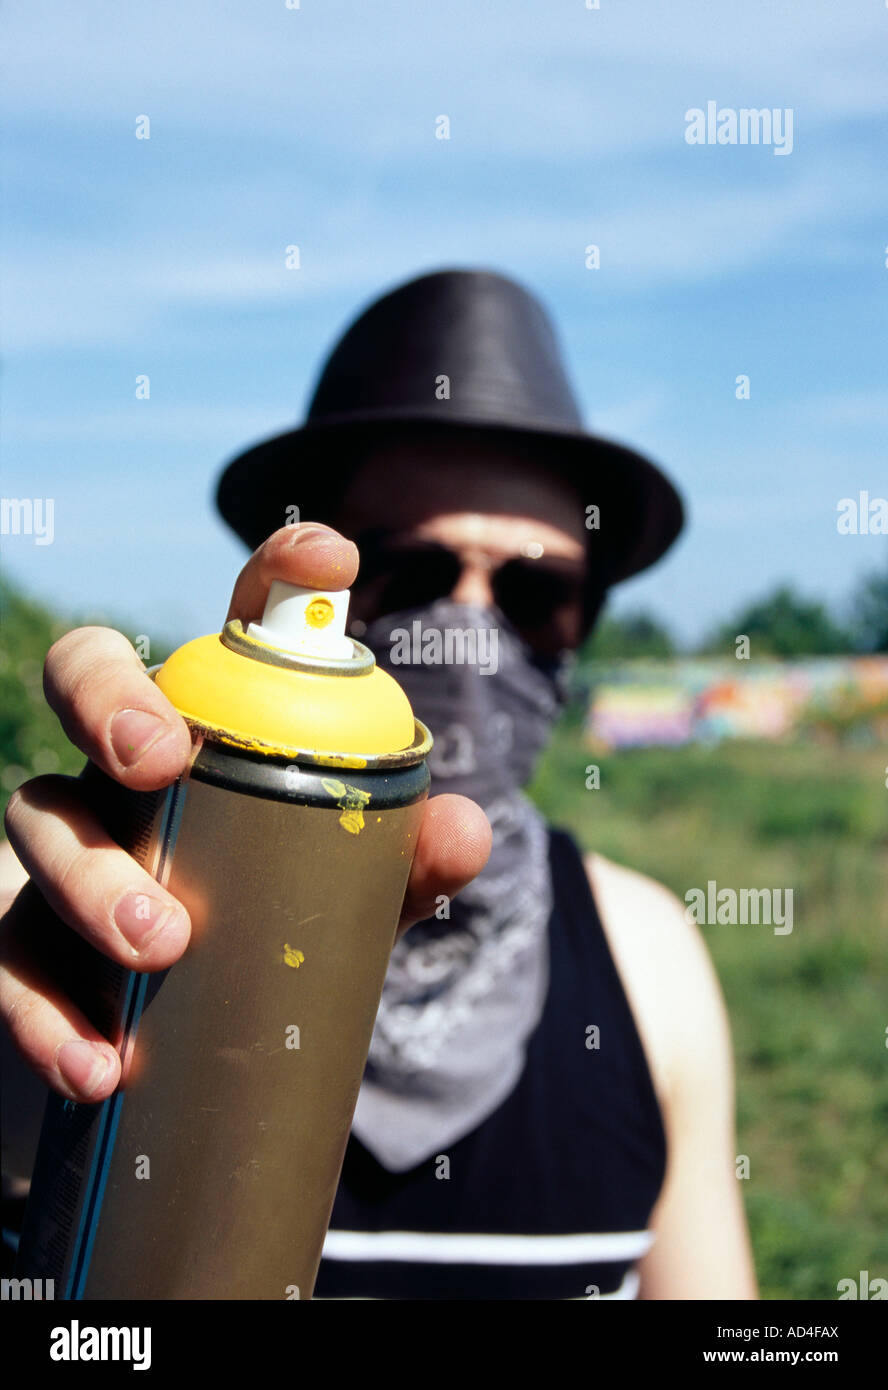 A man holding a can of spray paint - Stock Image